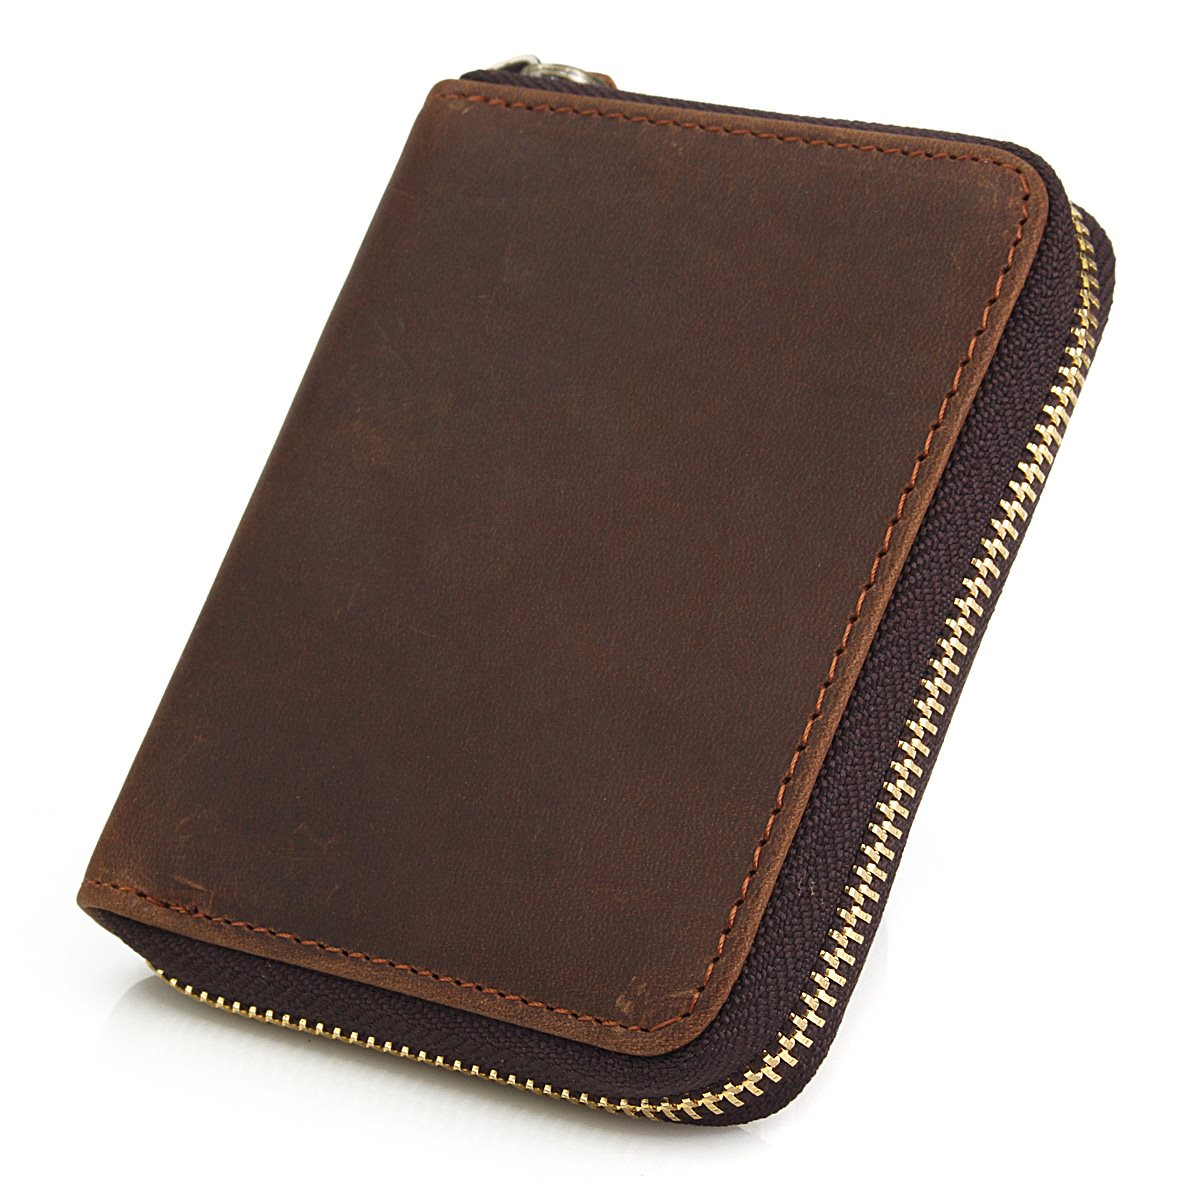 100% Genuine Leather Men Wallets Short Coin Purses Nubuck Small Zipper Notecase Brown ID Credit Card Holders New Male Carteira(China (Mainland))